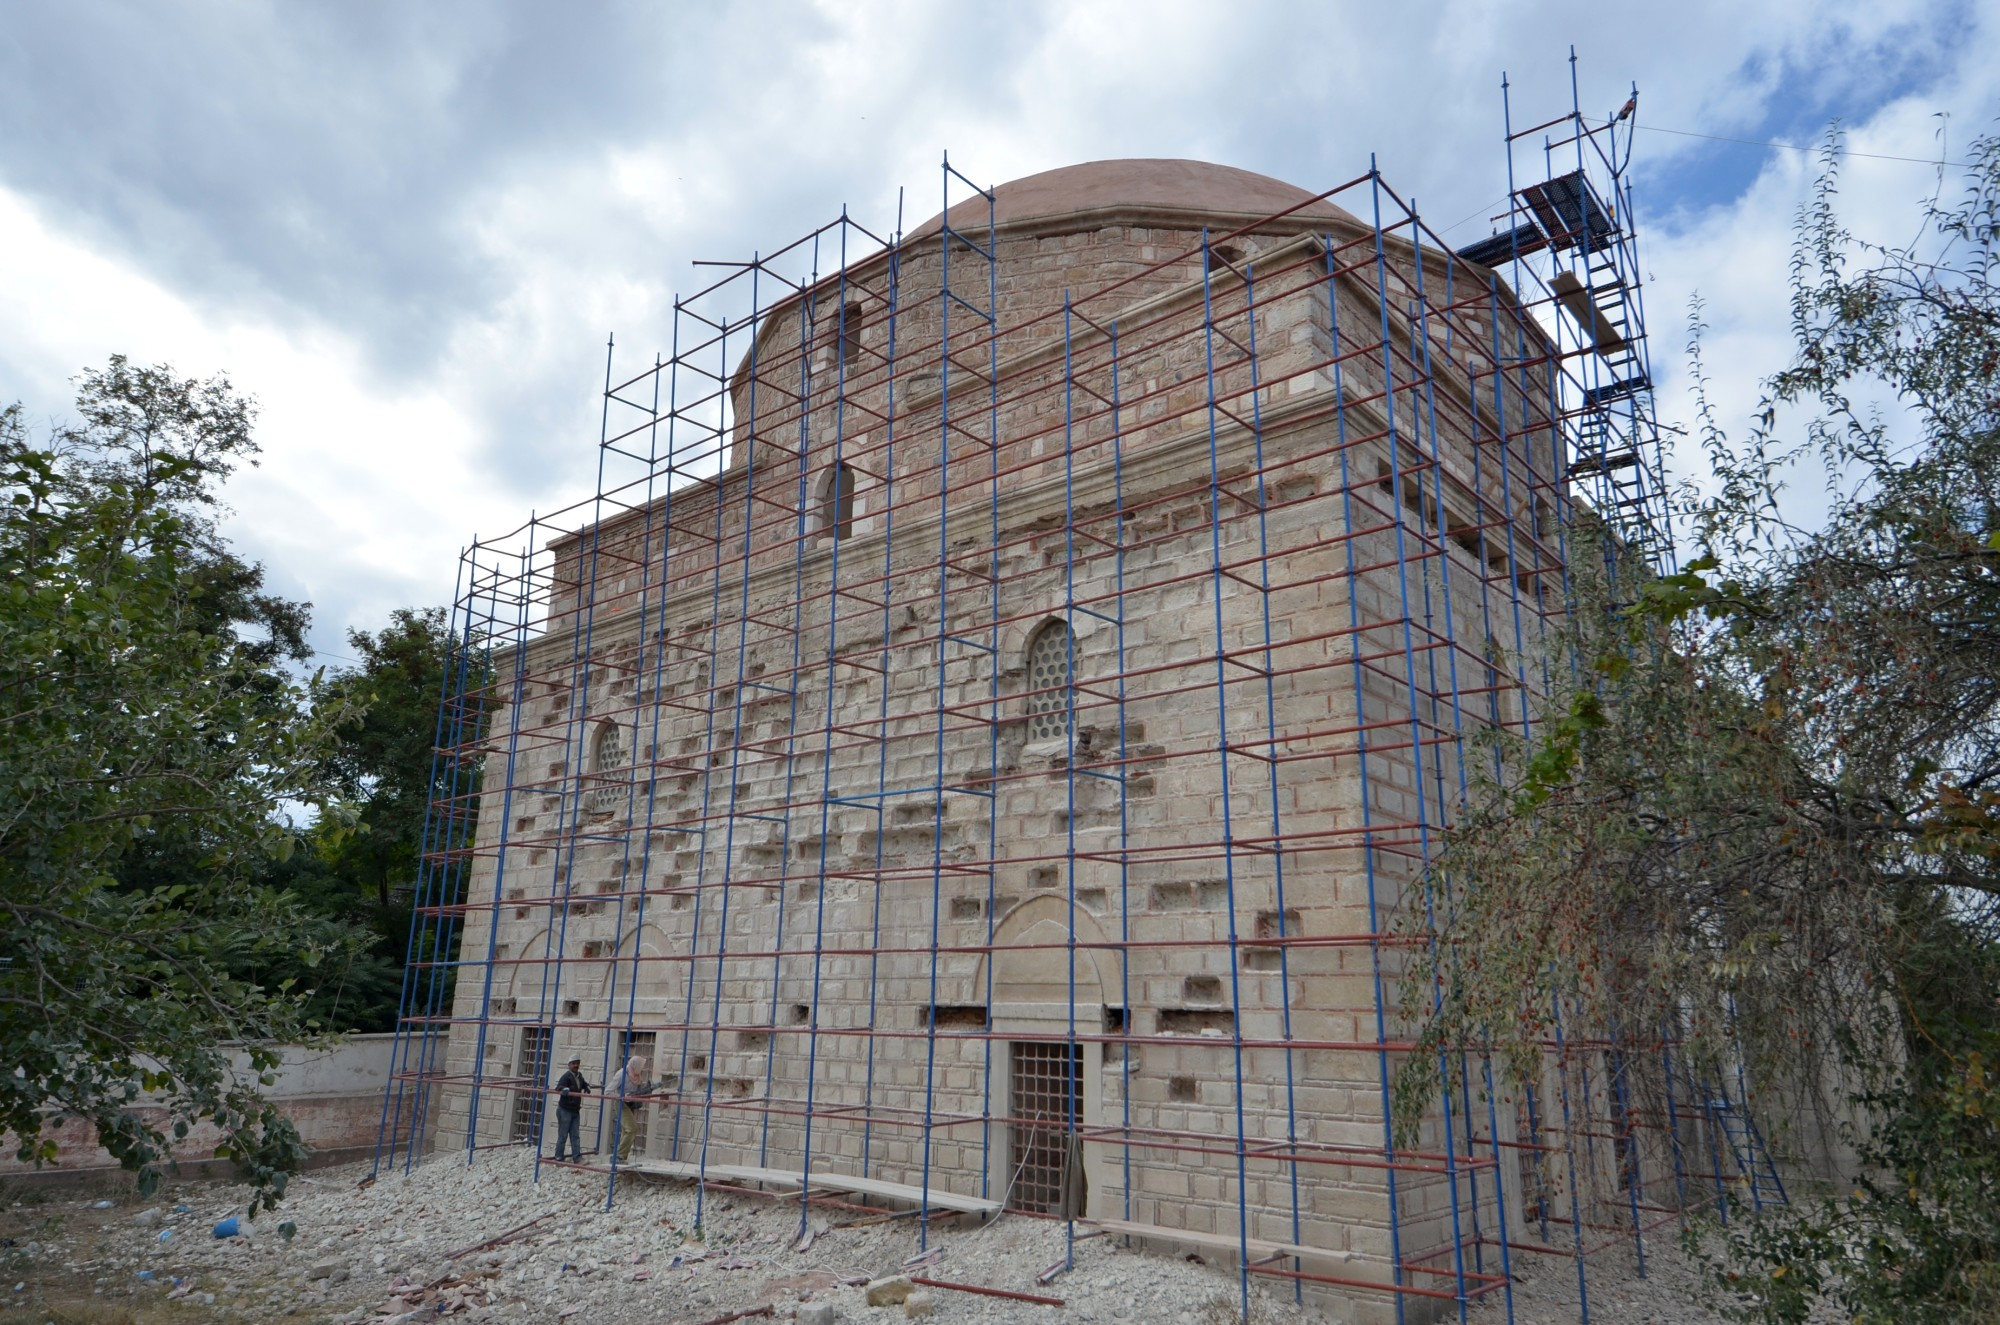 Beylerbeyi Suleyman Pasha Mosque in Edirne during the renovation in 2013